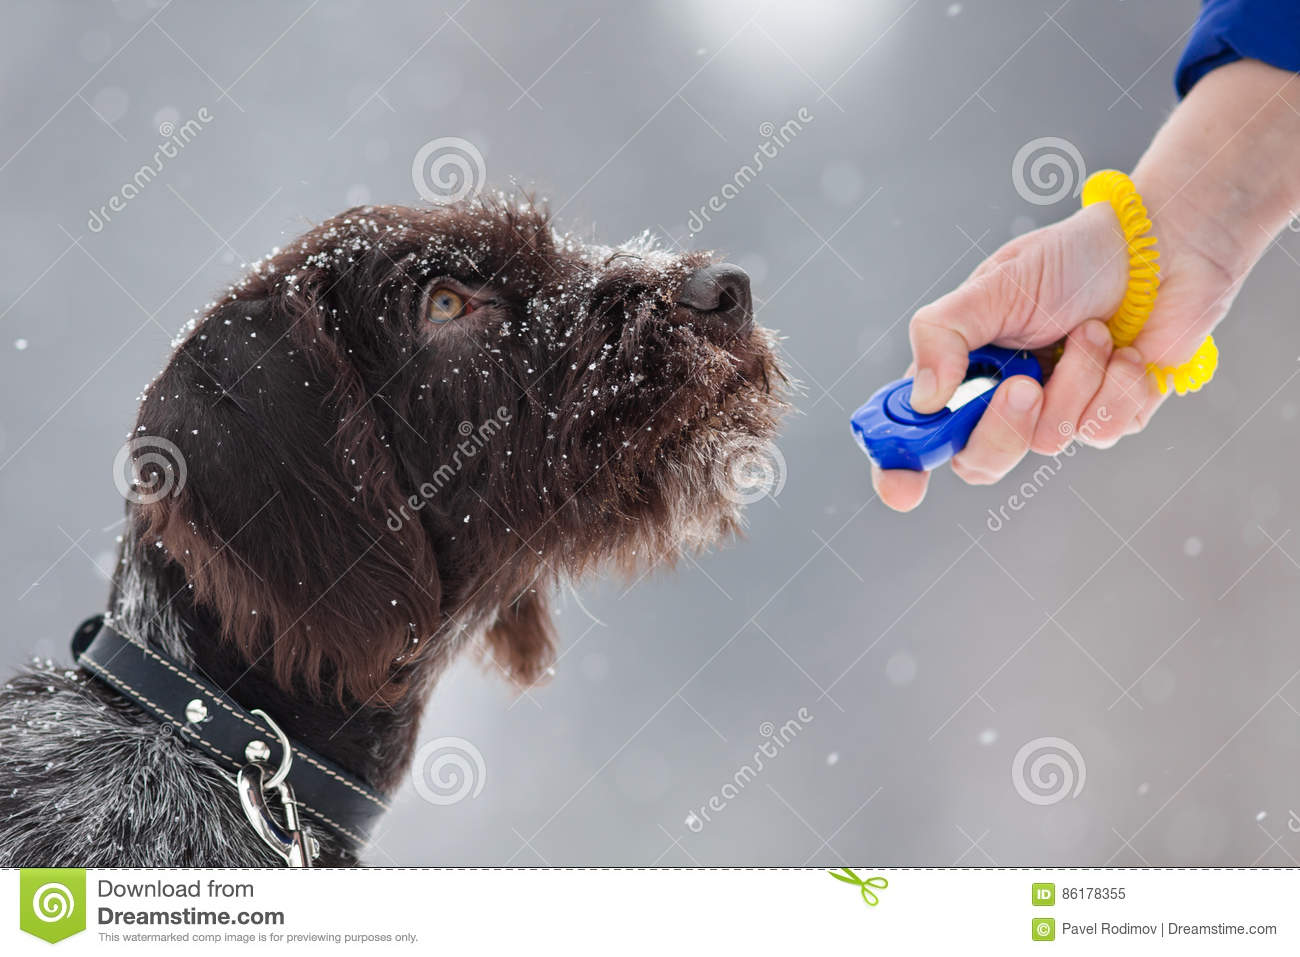 How To Make A Dog Clicker At Home